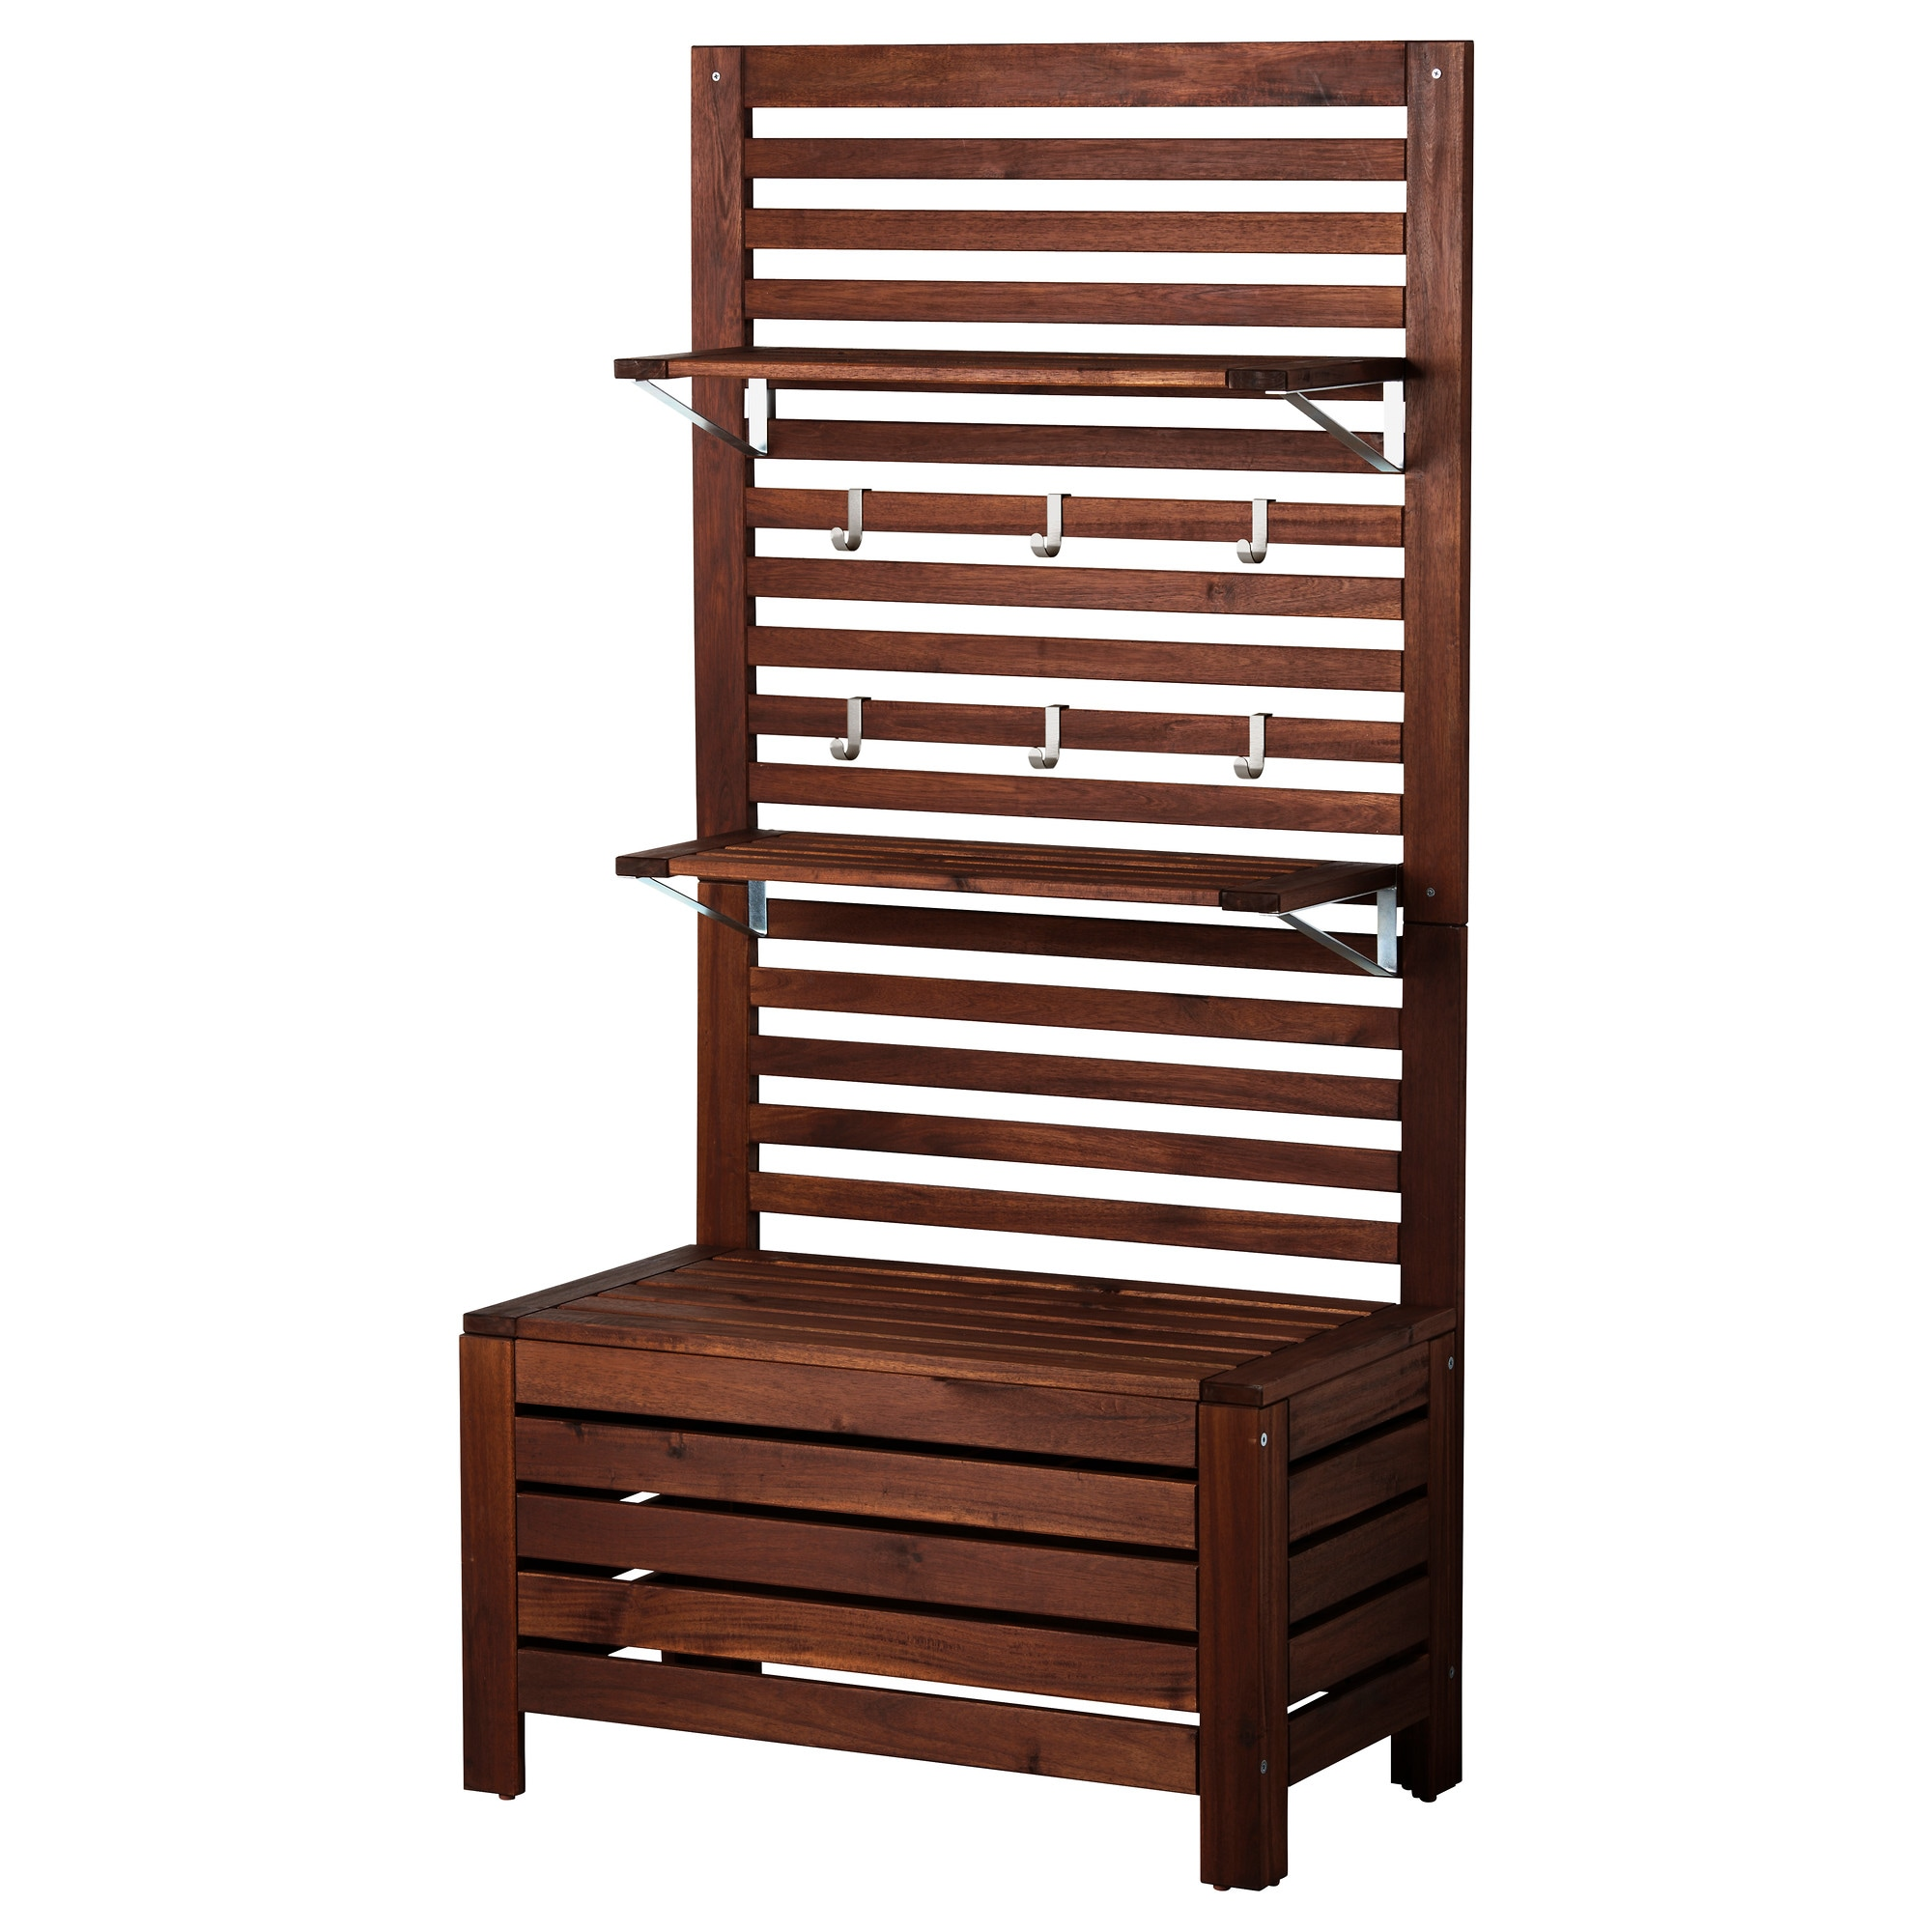 ã�pplarã� Bench W/panel And Shelves, Outdoor, Brown Stained Brown